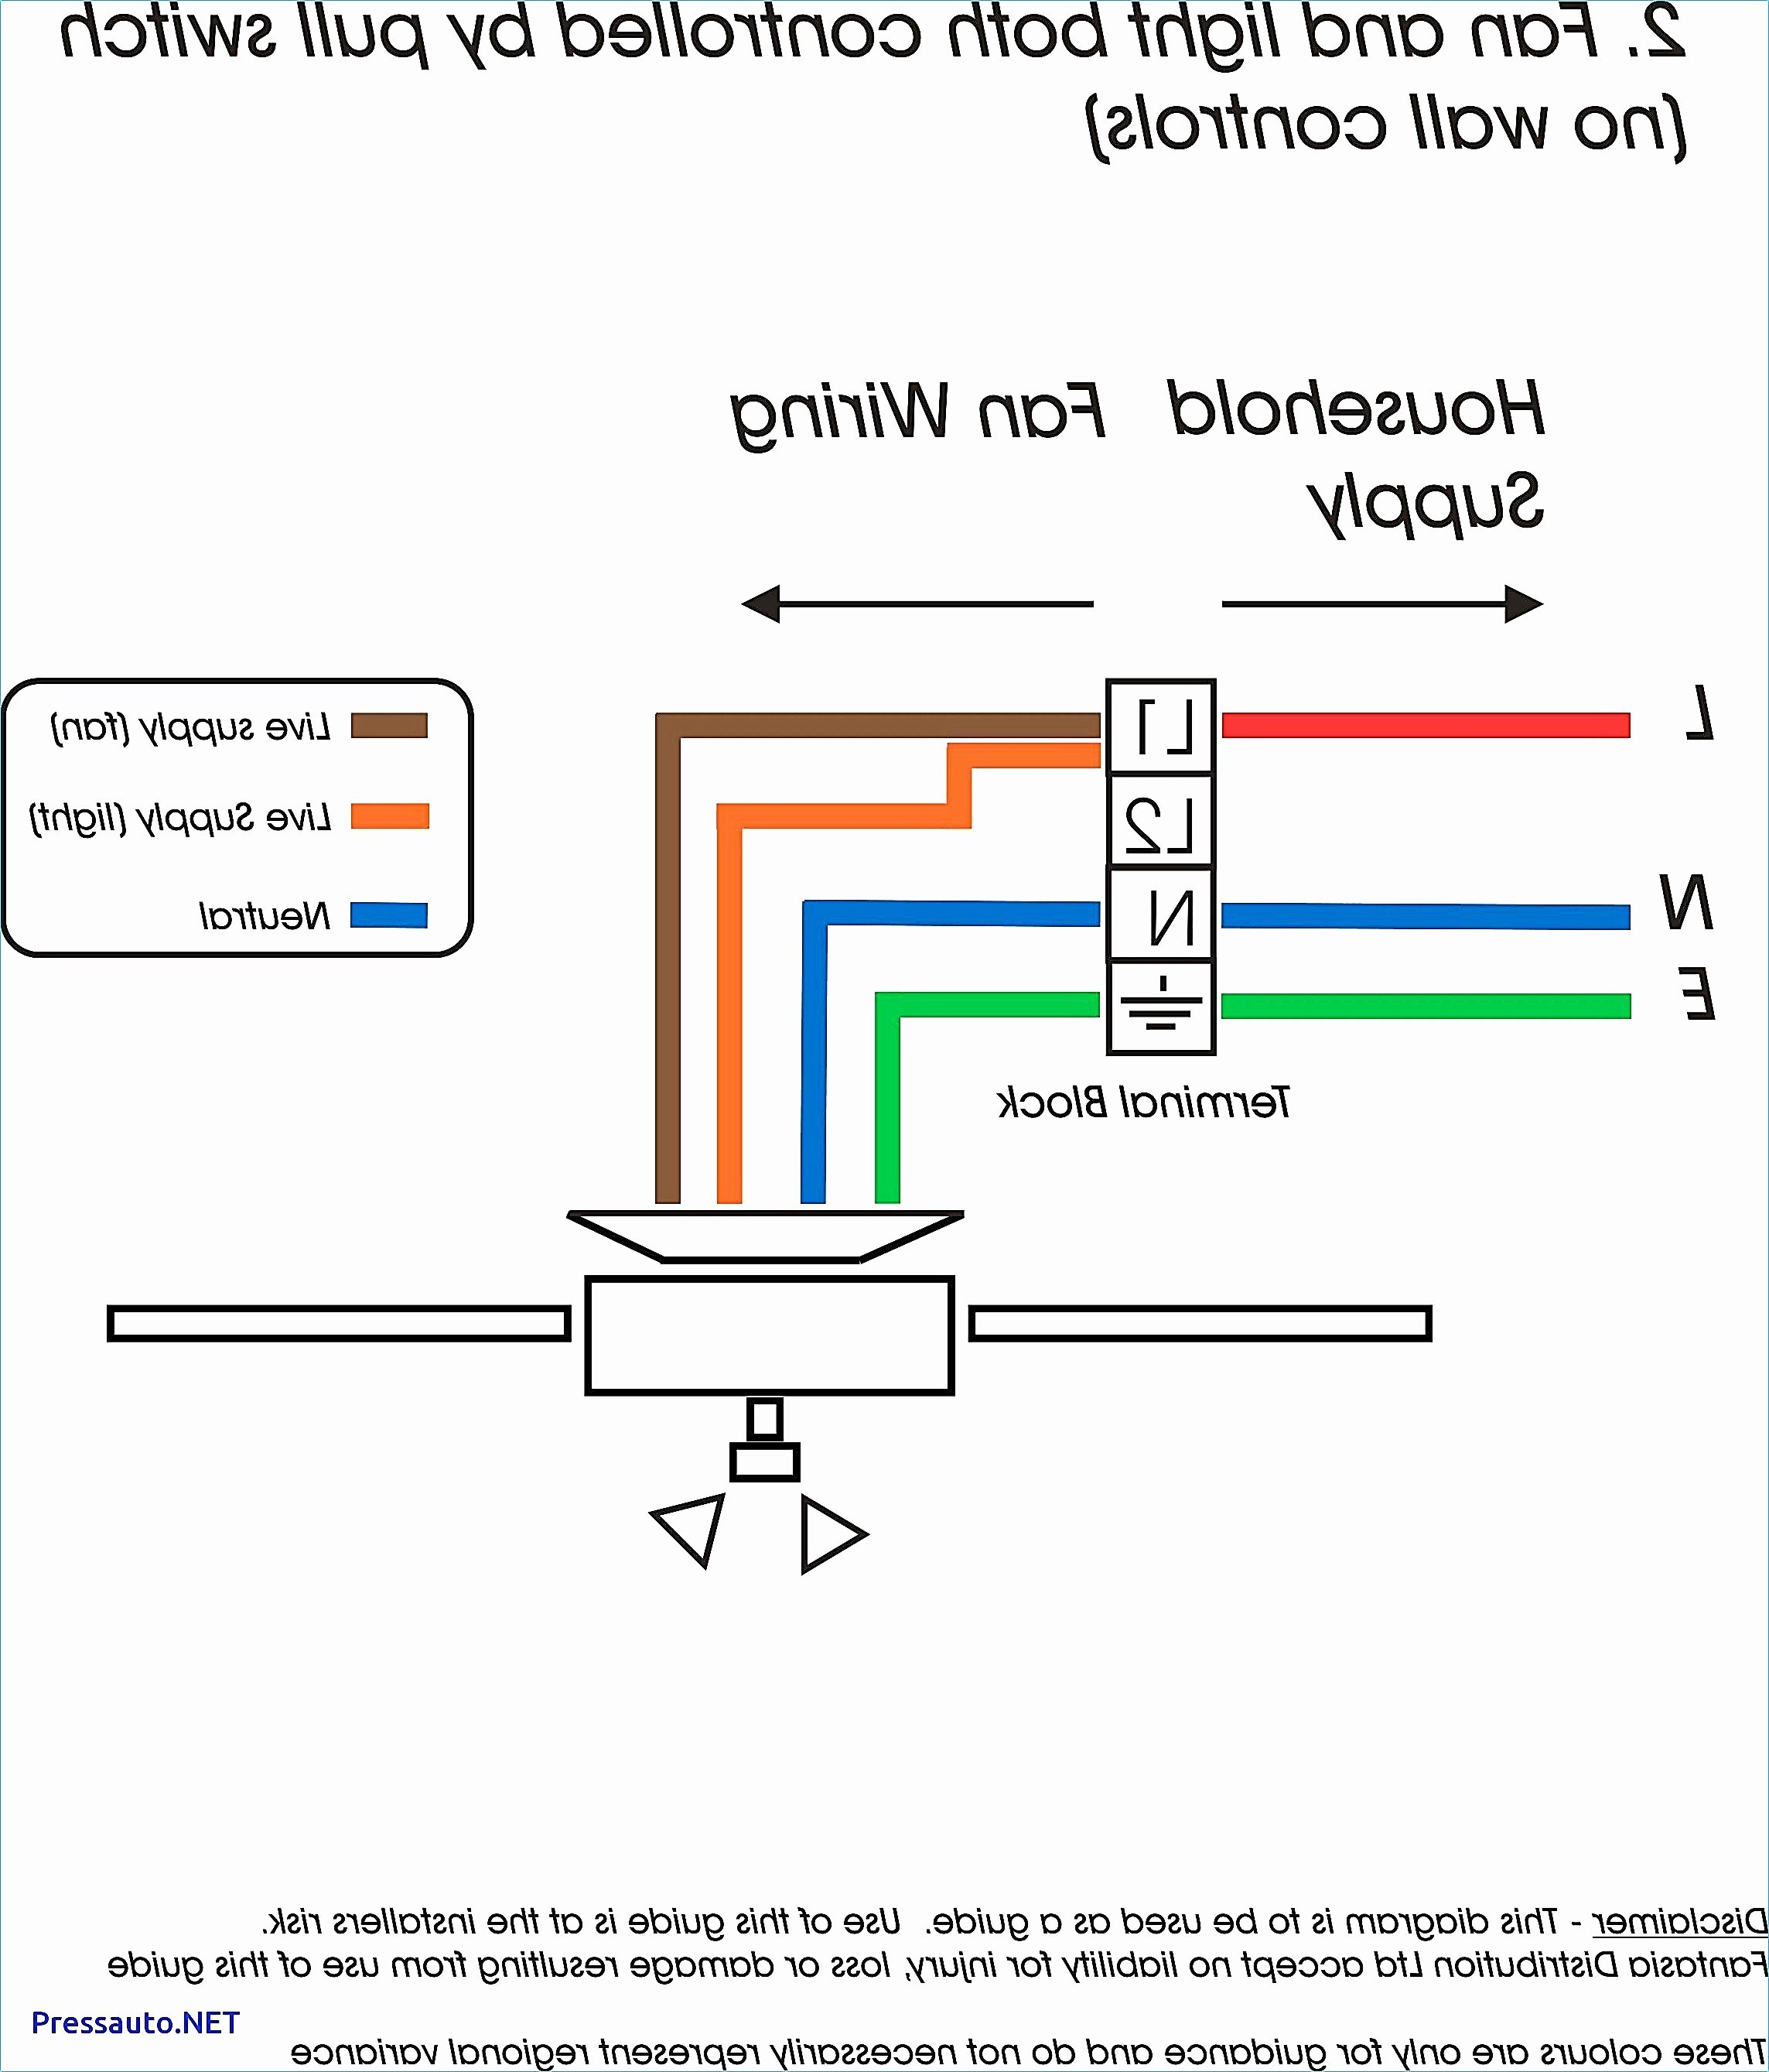 gmos lan 03 wiring diagram Download-recessed lighting wiring diagram Collection Wiring Diagram Recessed Lighting Valid Recessed Lighting Wiring Diagram Awesome DOWNLOAD Wiring Diagram 11-a